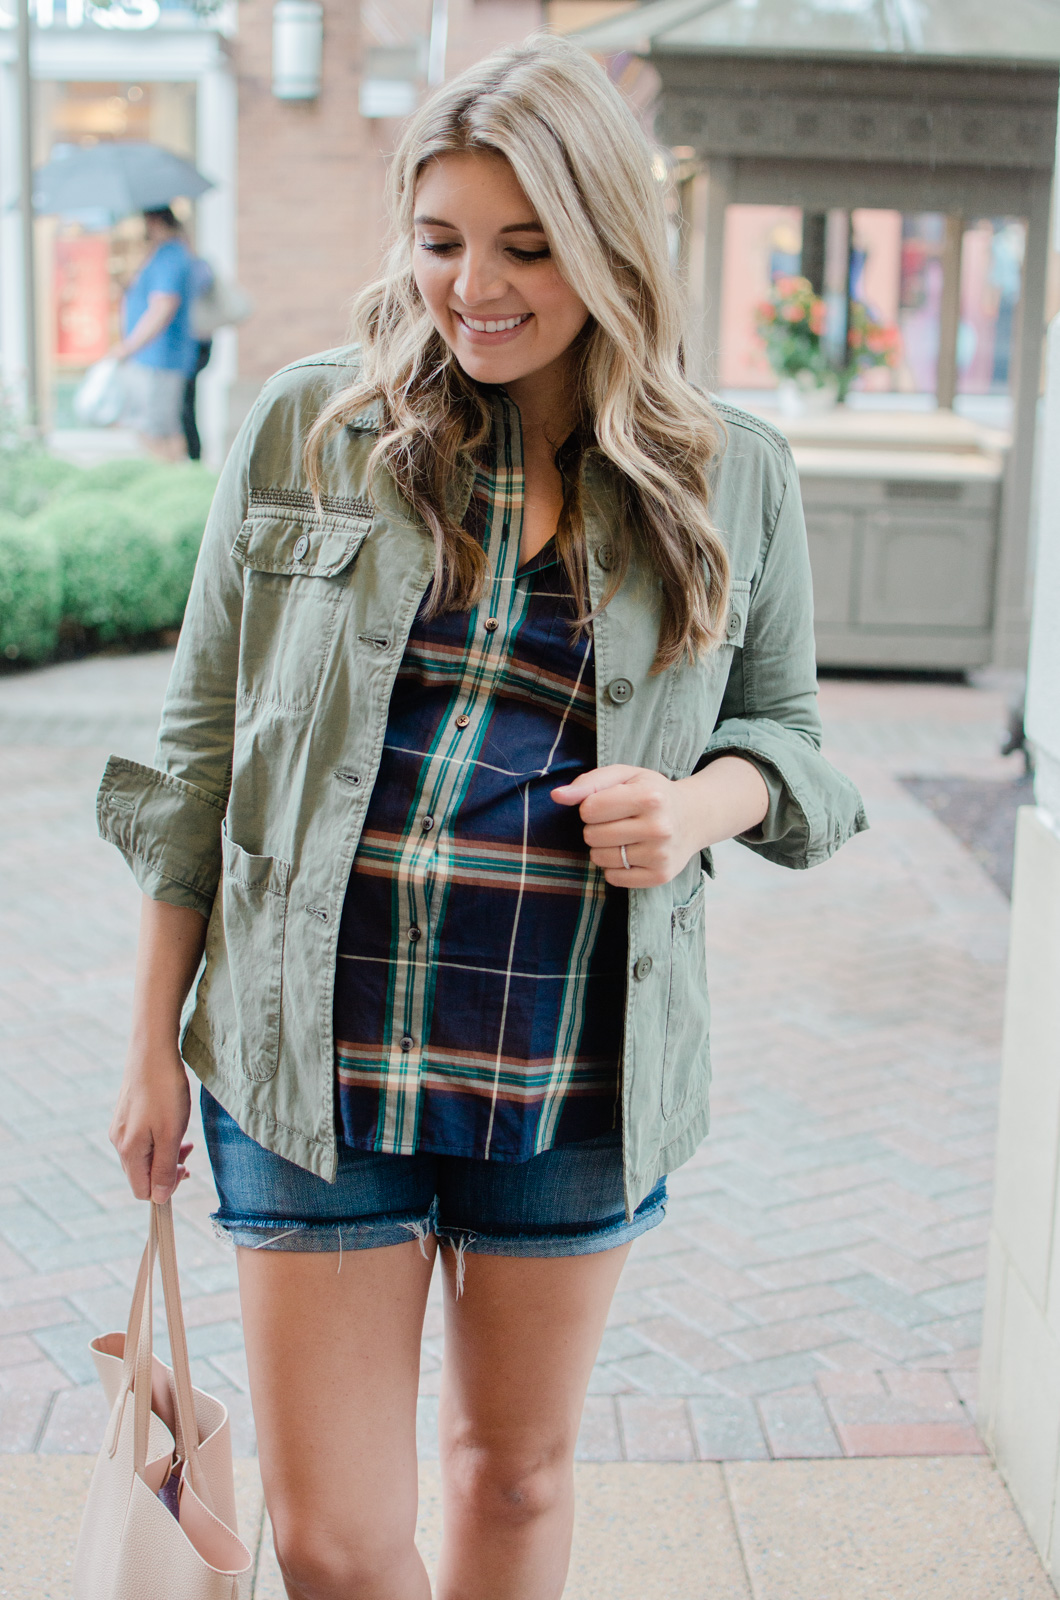 early fall maternity style - plaid top with shorts and utility jacket | bylaurenm.com